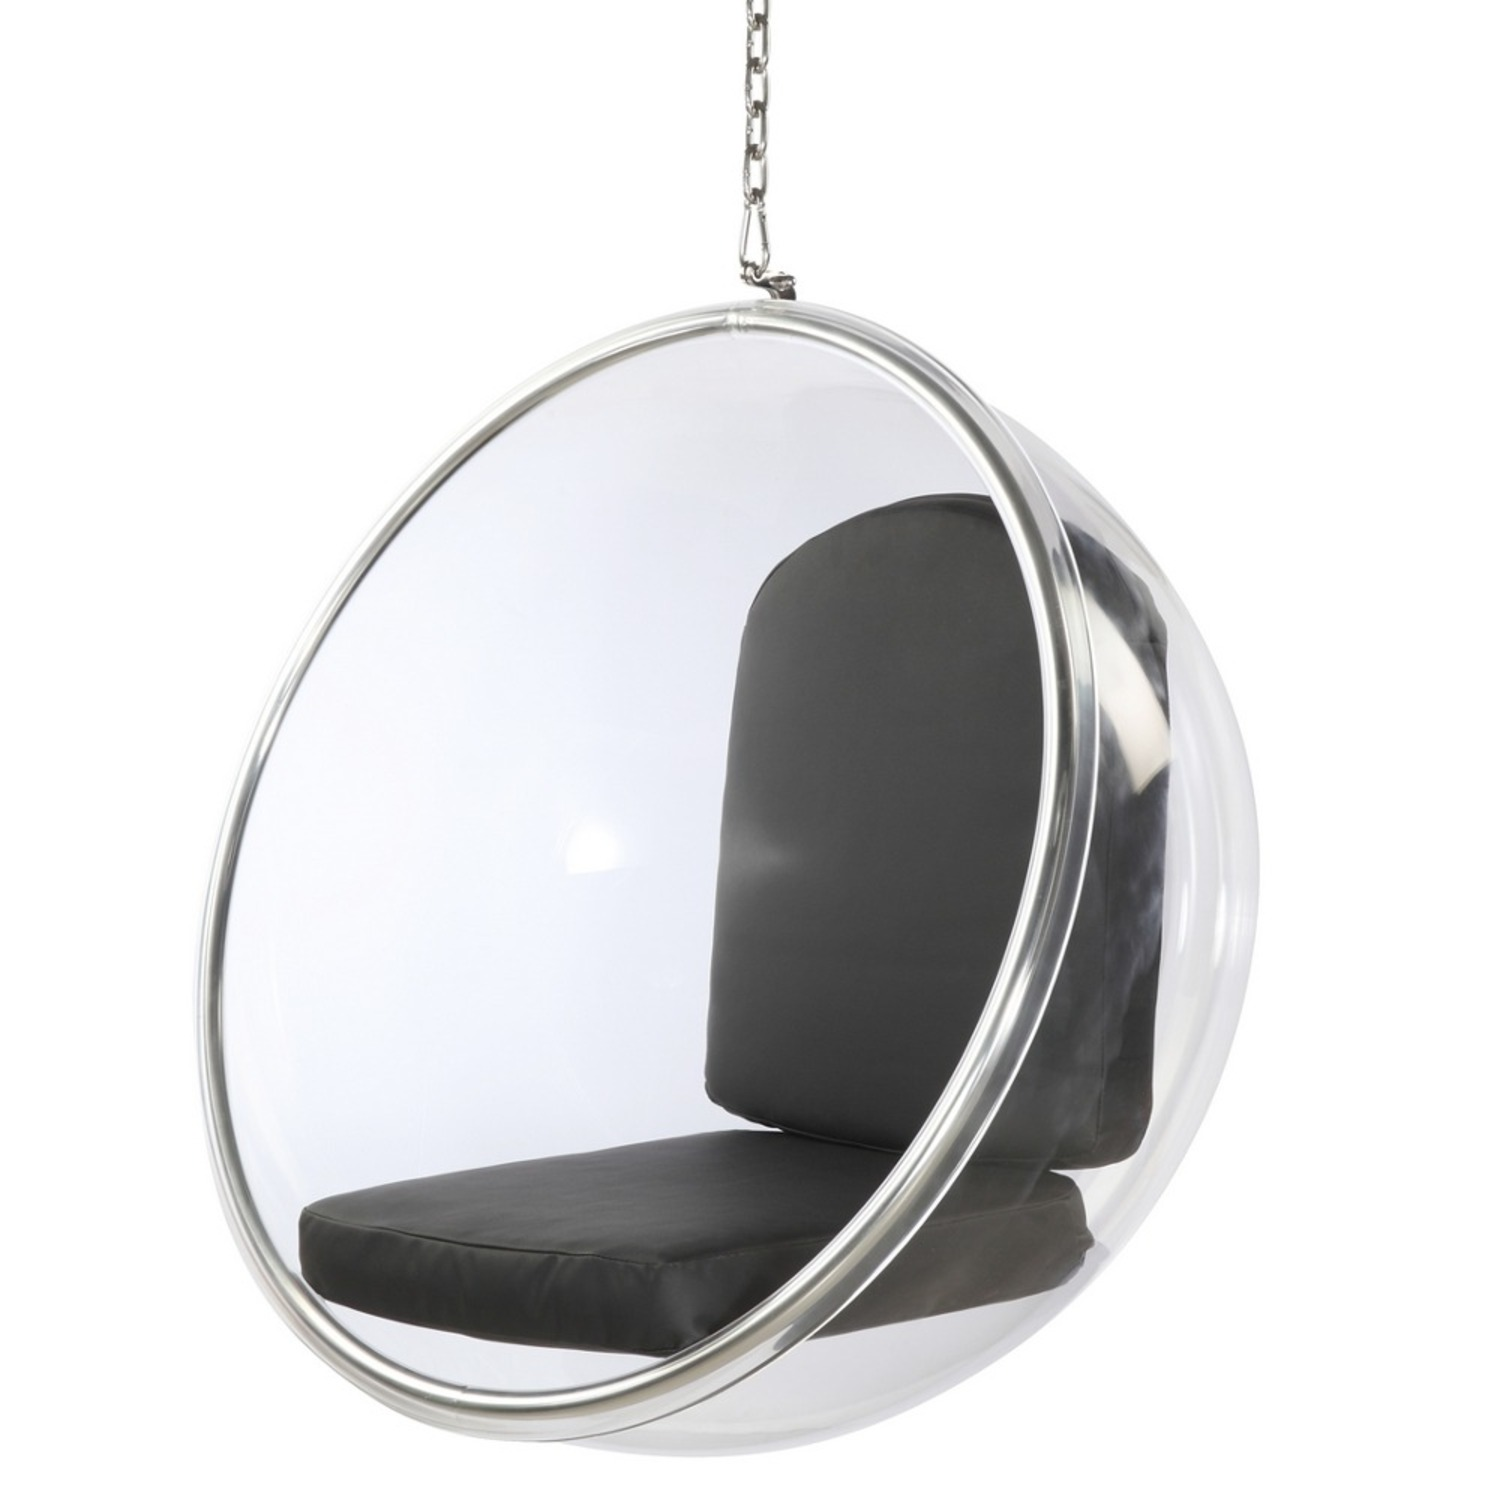 Hanging Chair In Clear Acrylic & Black PU Leather - image-4